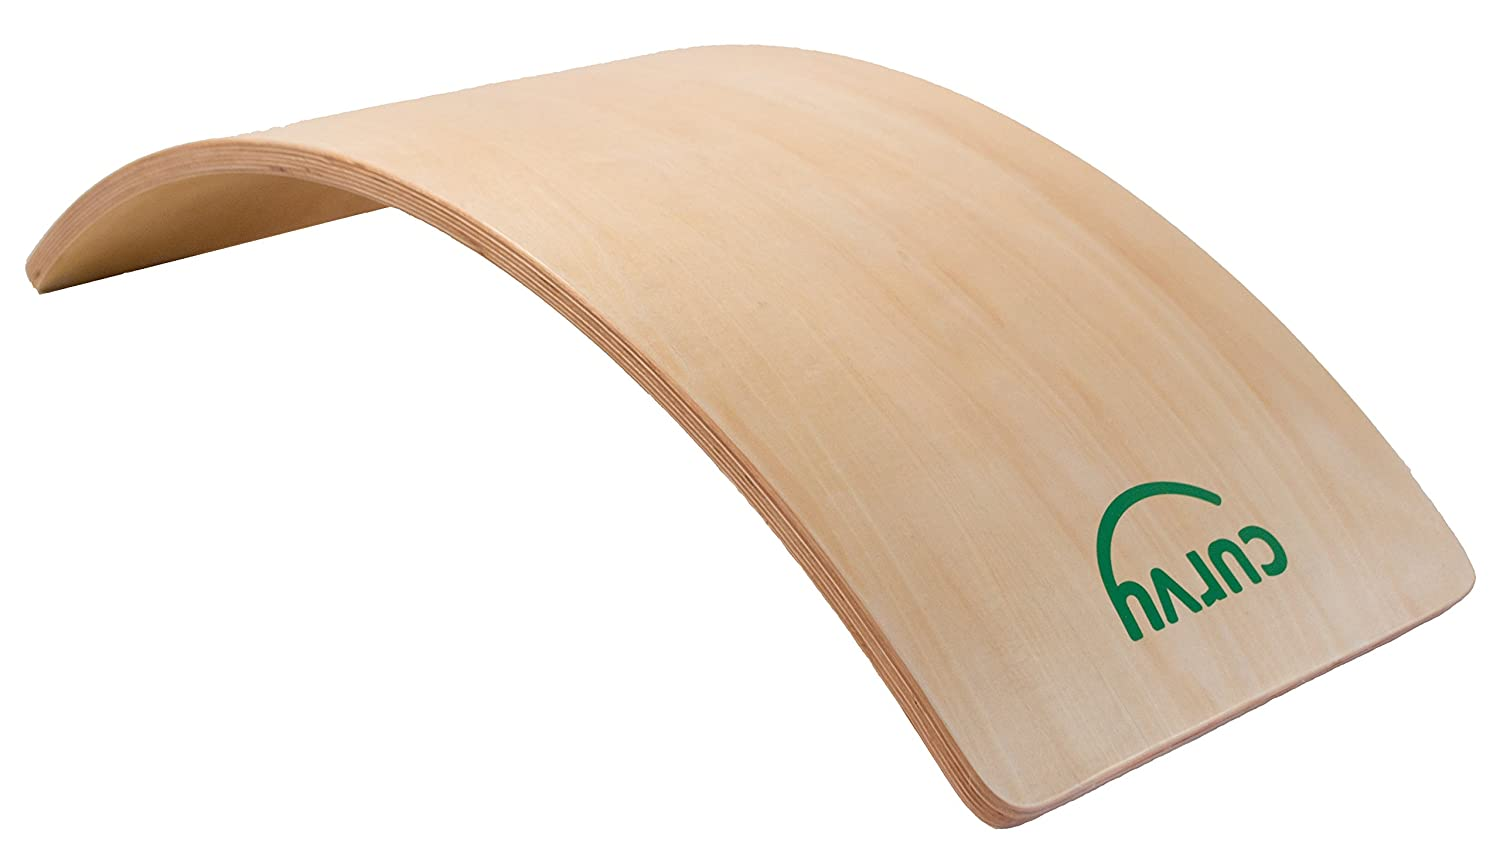 Curvy Balance Board, Large Wooden Balance/Rocker Board - Waldorf Open Ended Toy Young & Learning